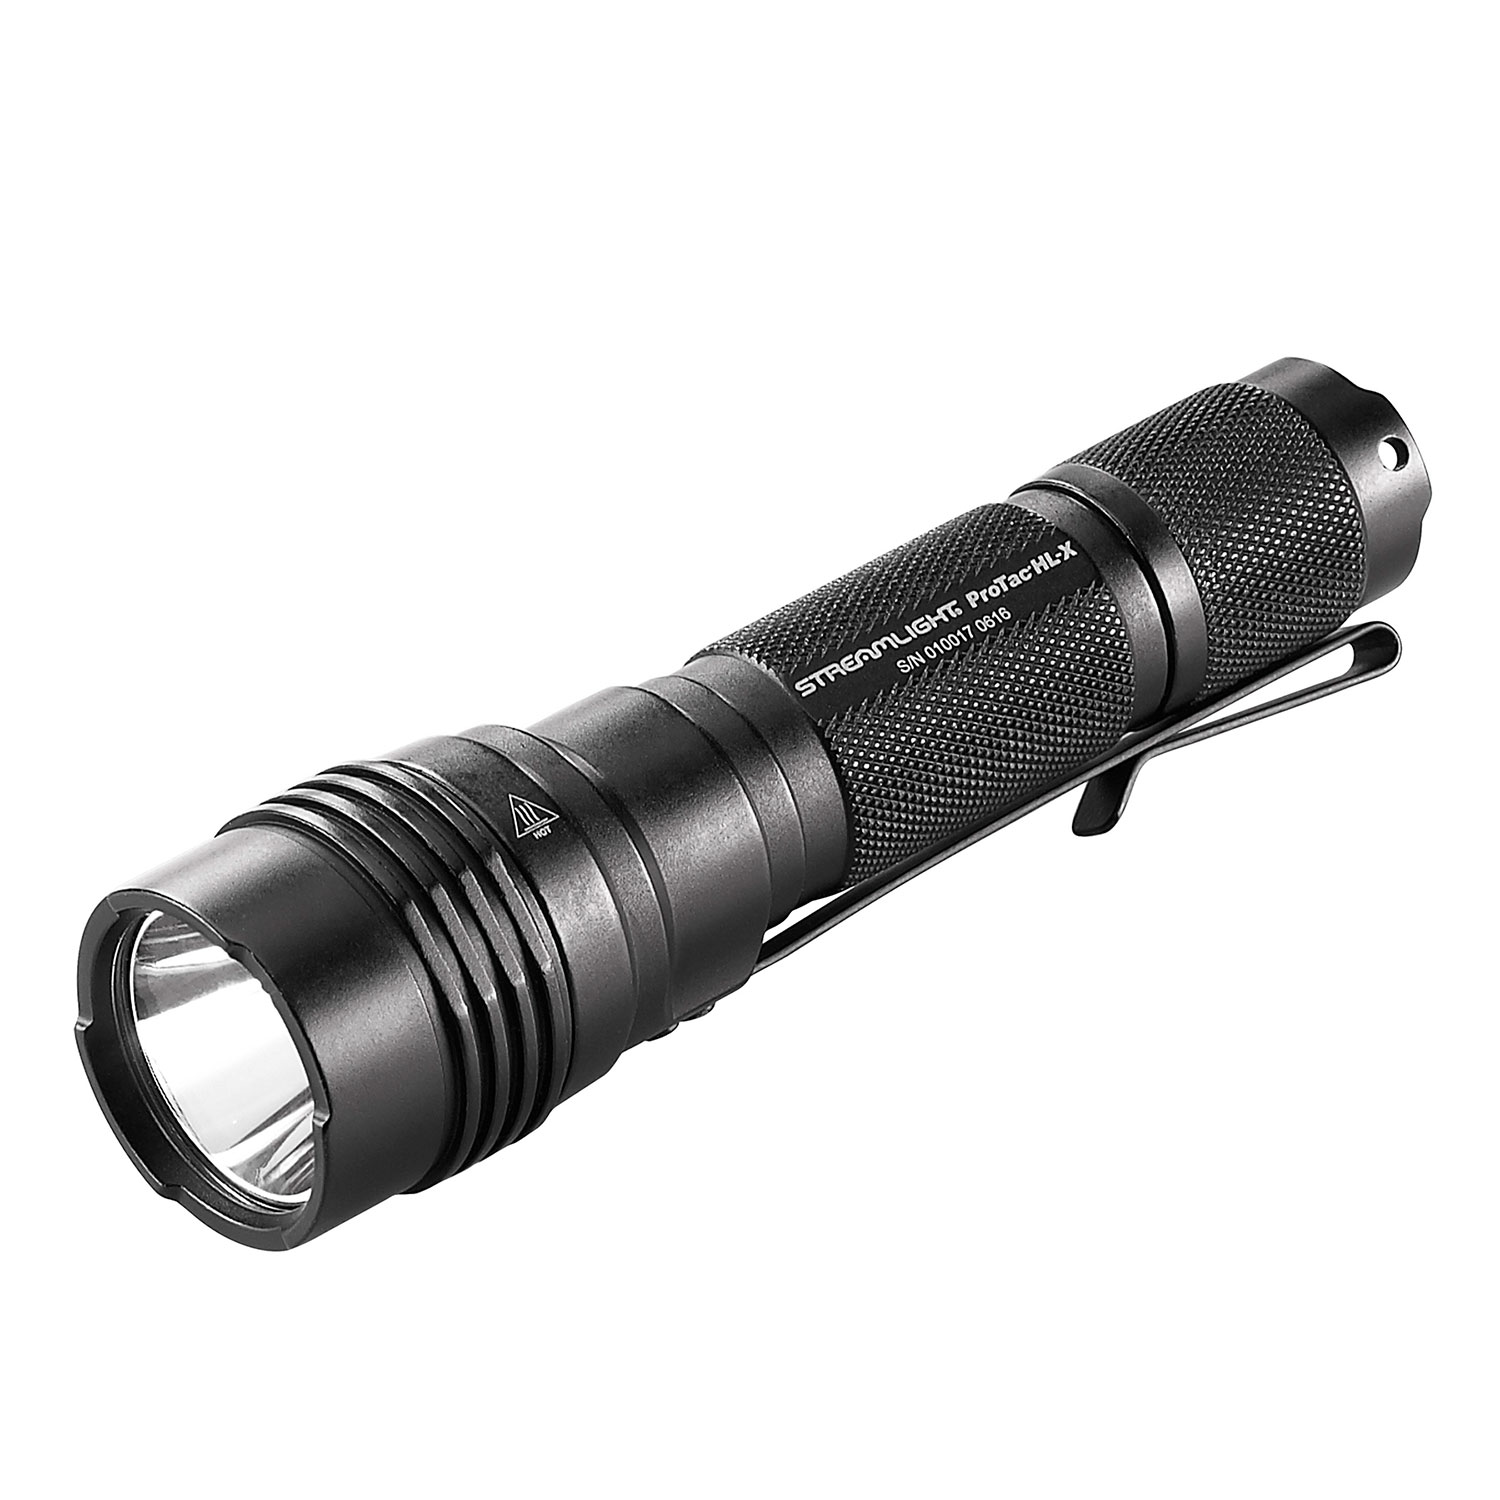 Streamlight ProTac HL-X Flashlight with USB Charging Battery